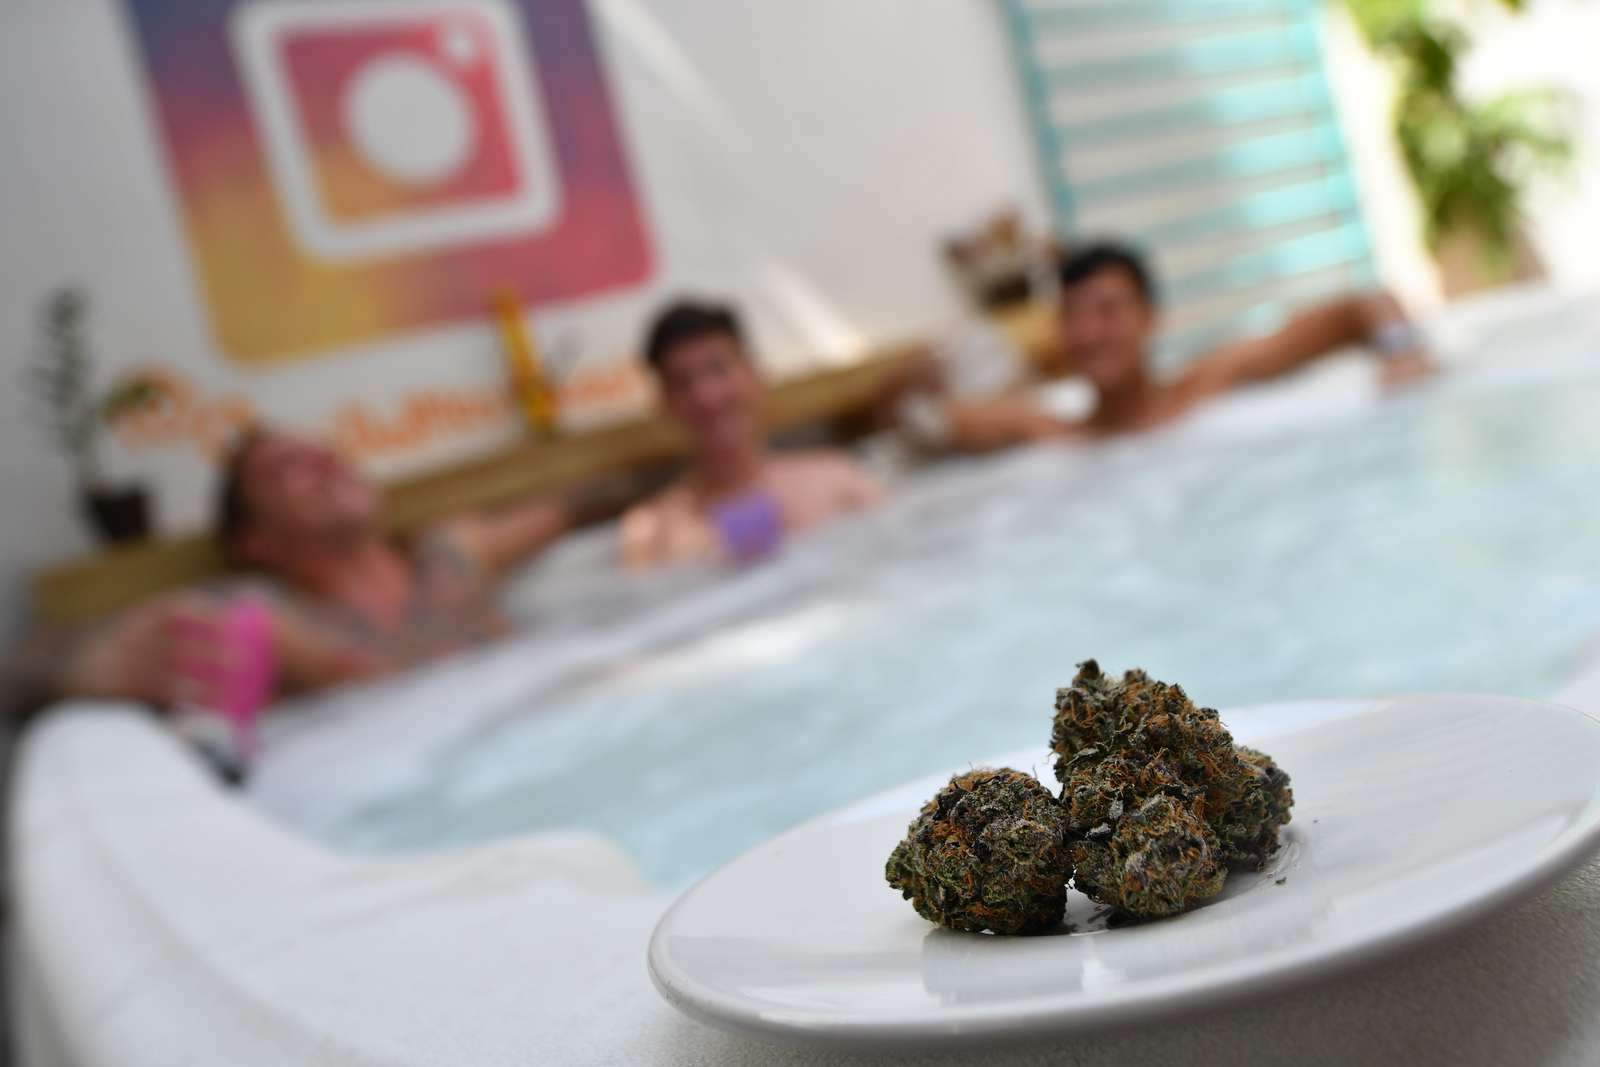 Jacuzzi + 420 = total vacation